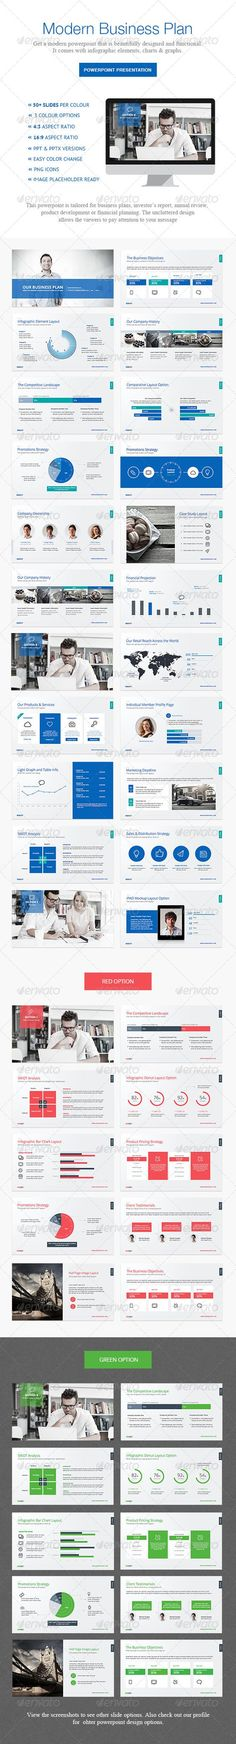 Business  - Powerpoint Template http://graphicriver.net/item/business-plan-powerpoint/6098844?ref=creativetouch: